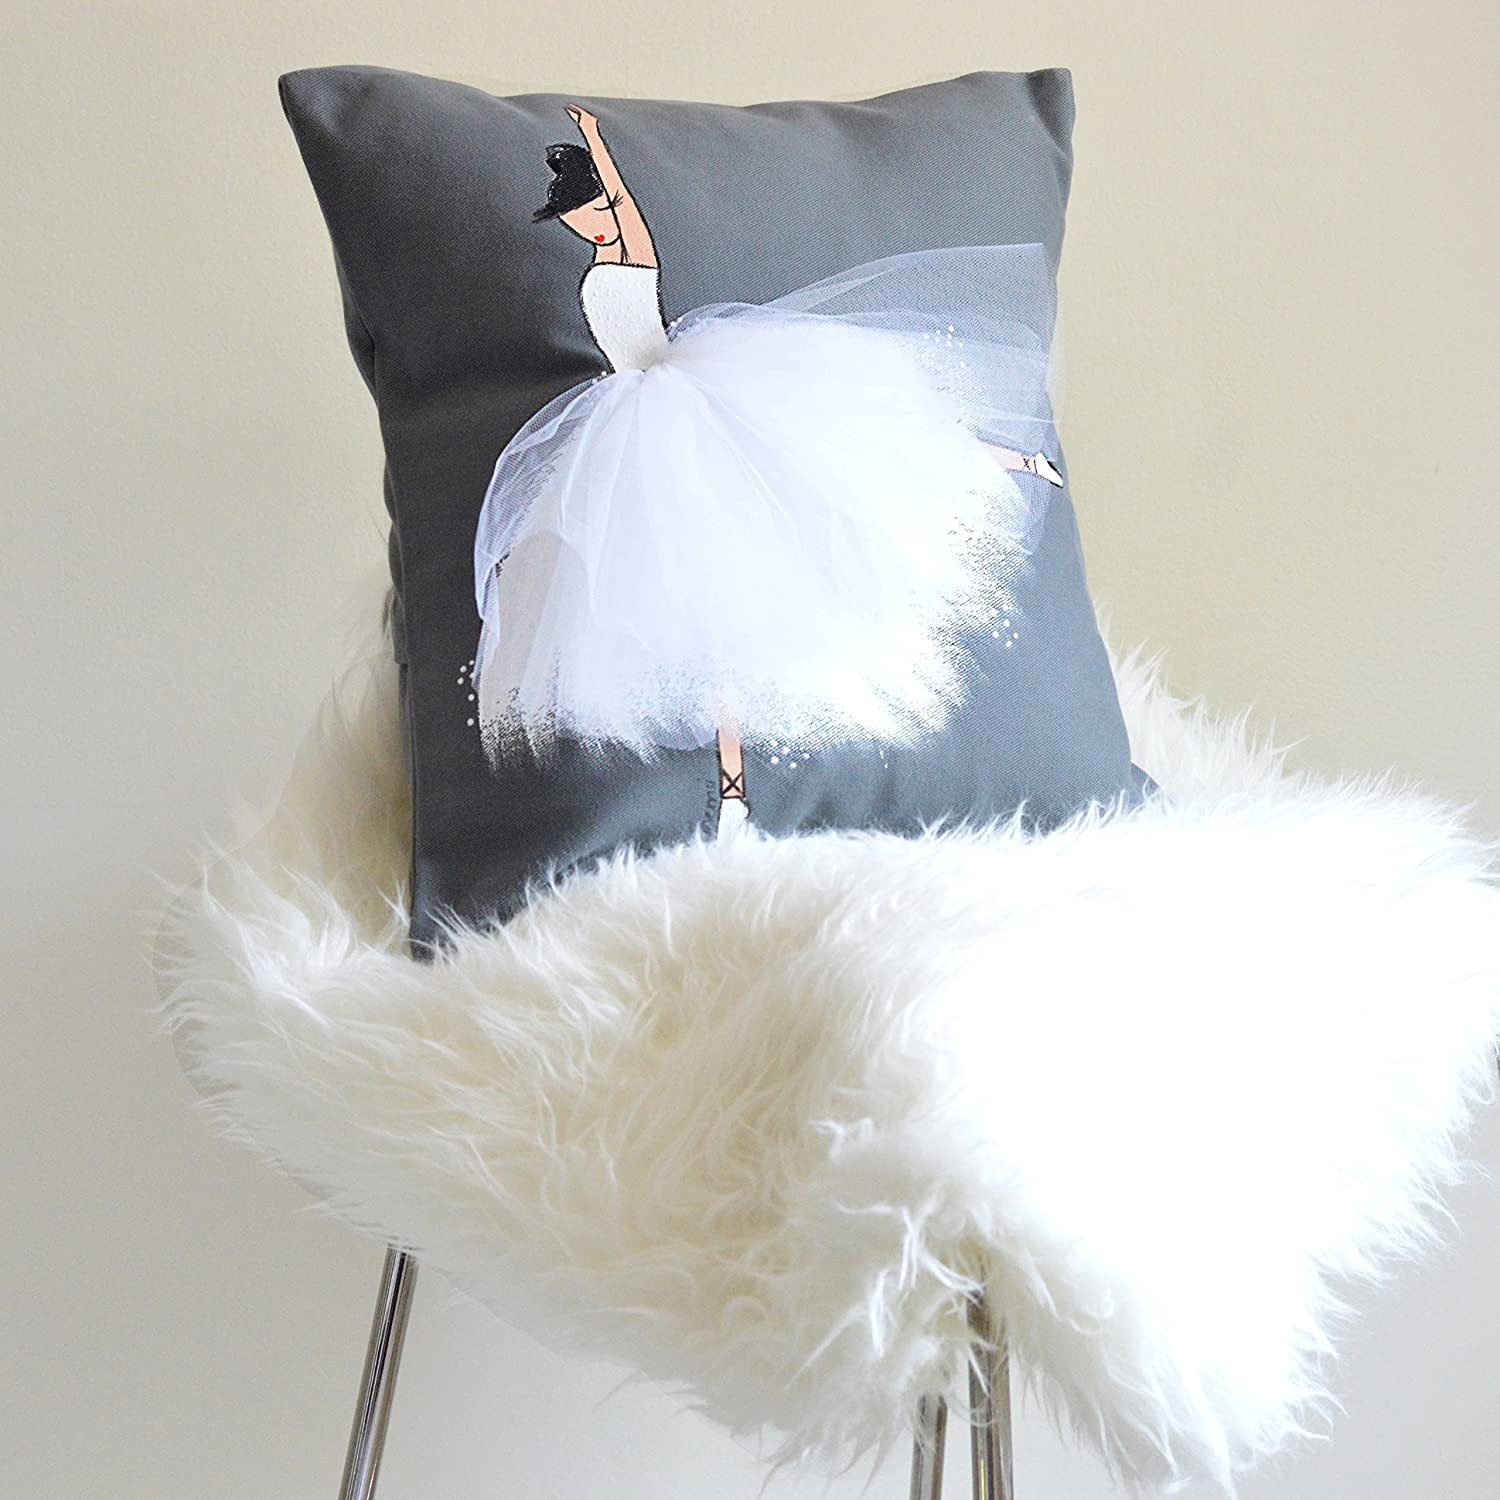 Ballerina Room Decor Pillow Cover Ballet Art on Cushion Accent for Little Baby Girl